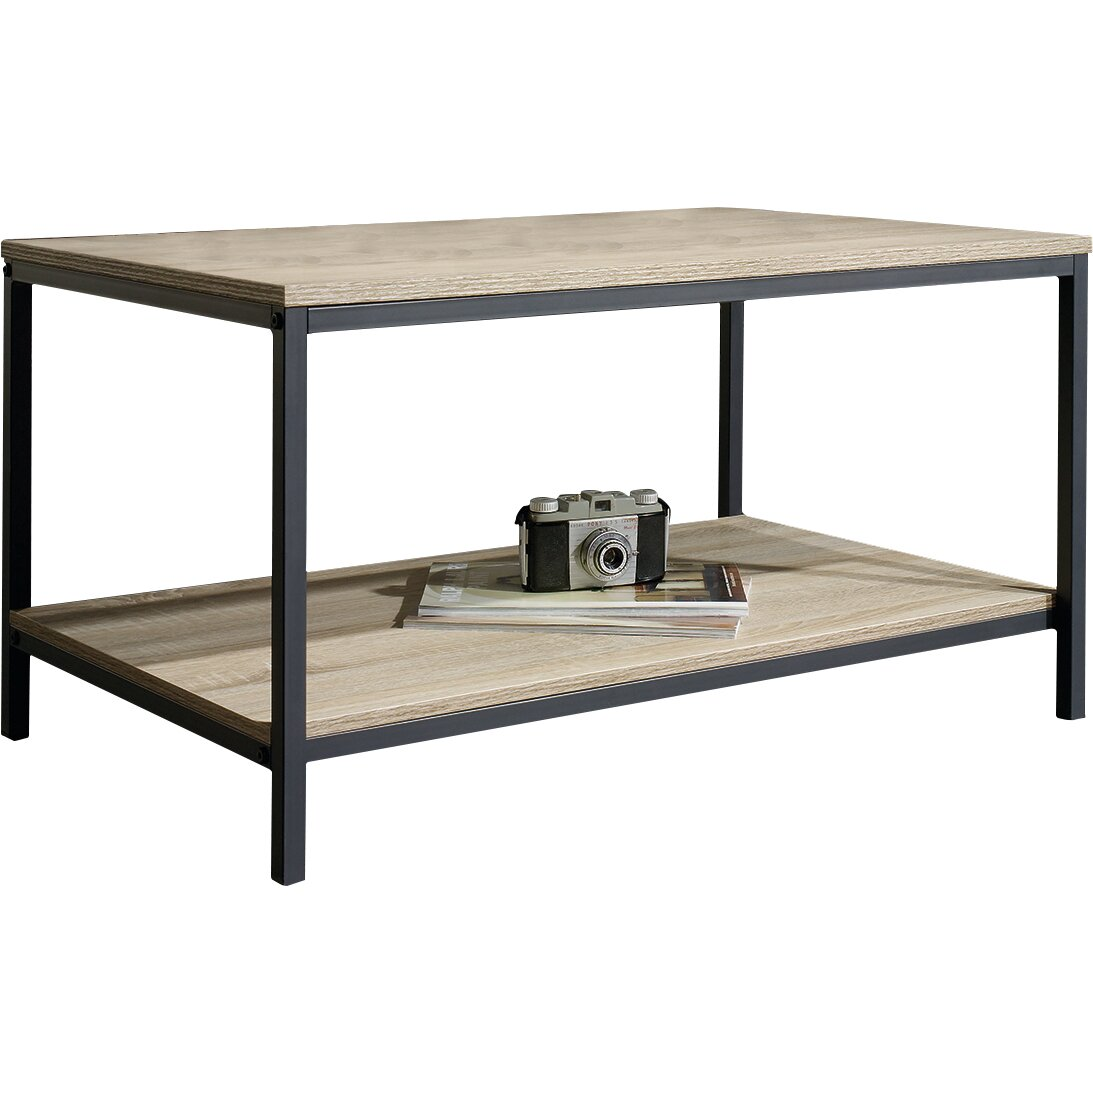 QUICK VIEW. Ermont Coffee Table - Coffee Tables You'll Love Wayfair